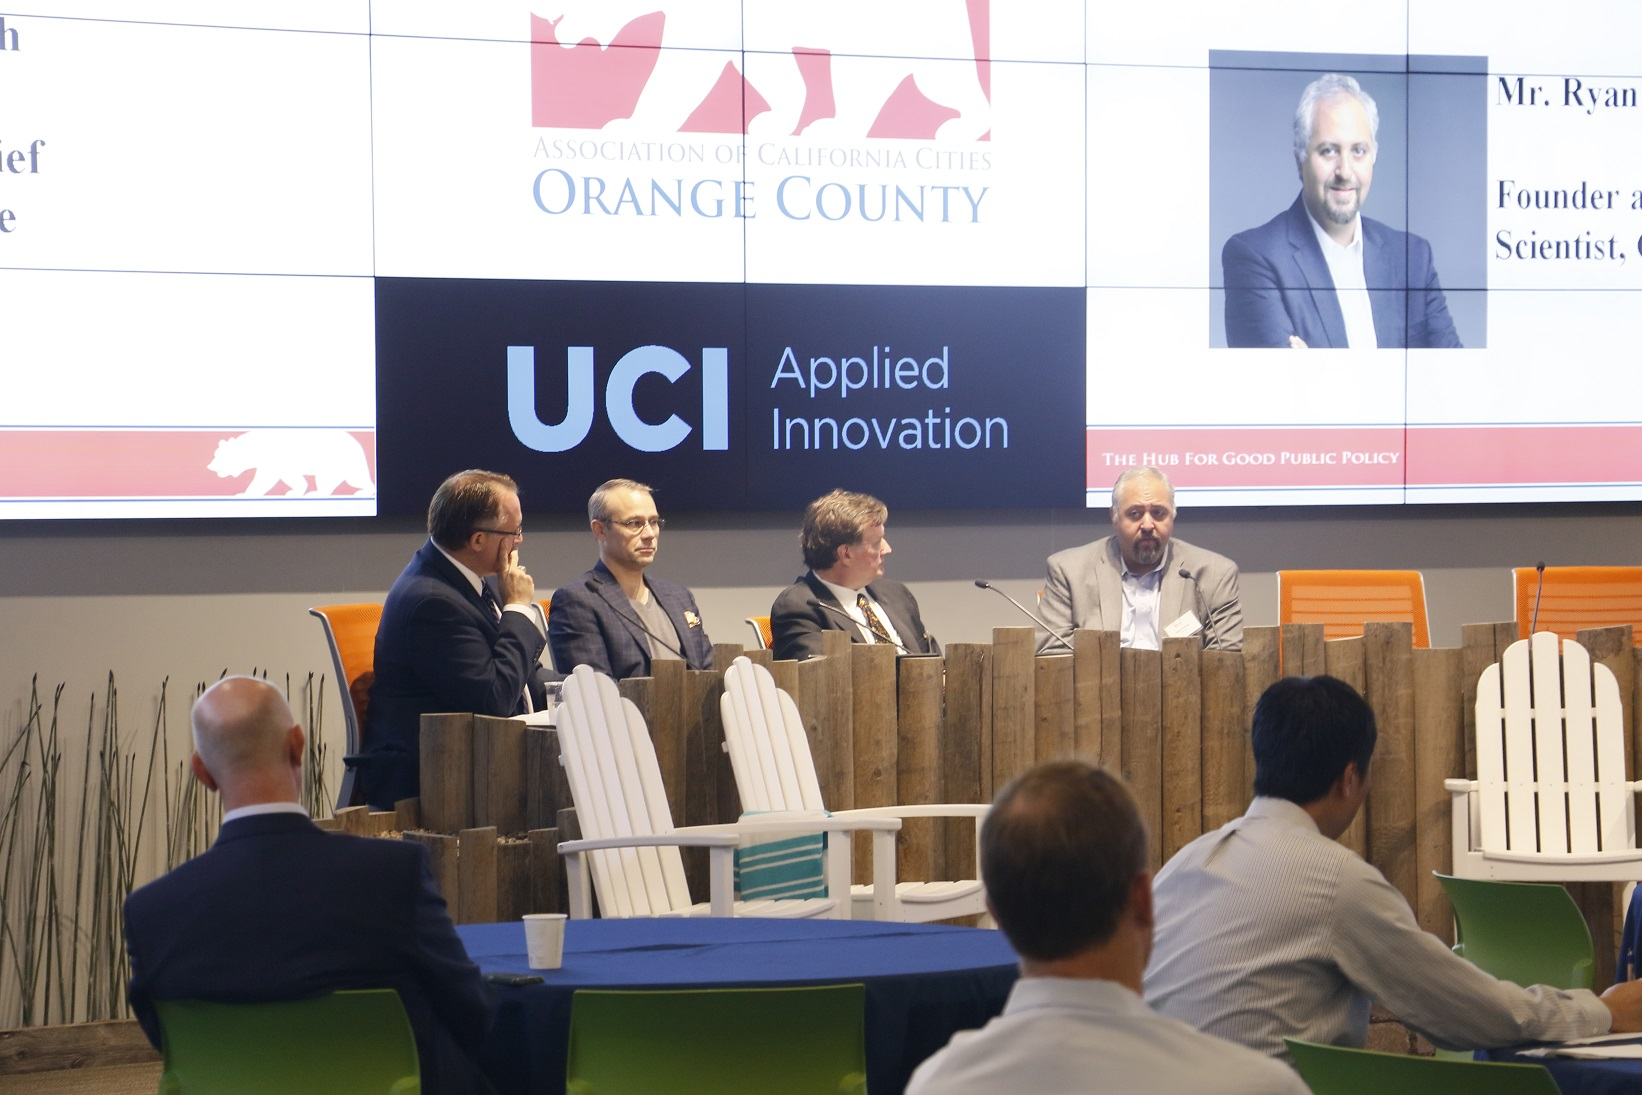 As Cities Get Smarter; Association of California Cities – Orange County Forum Address Cyber Security